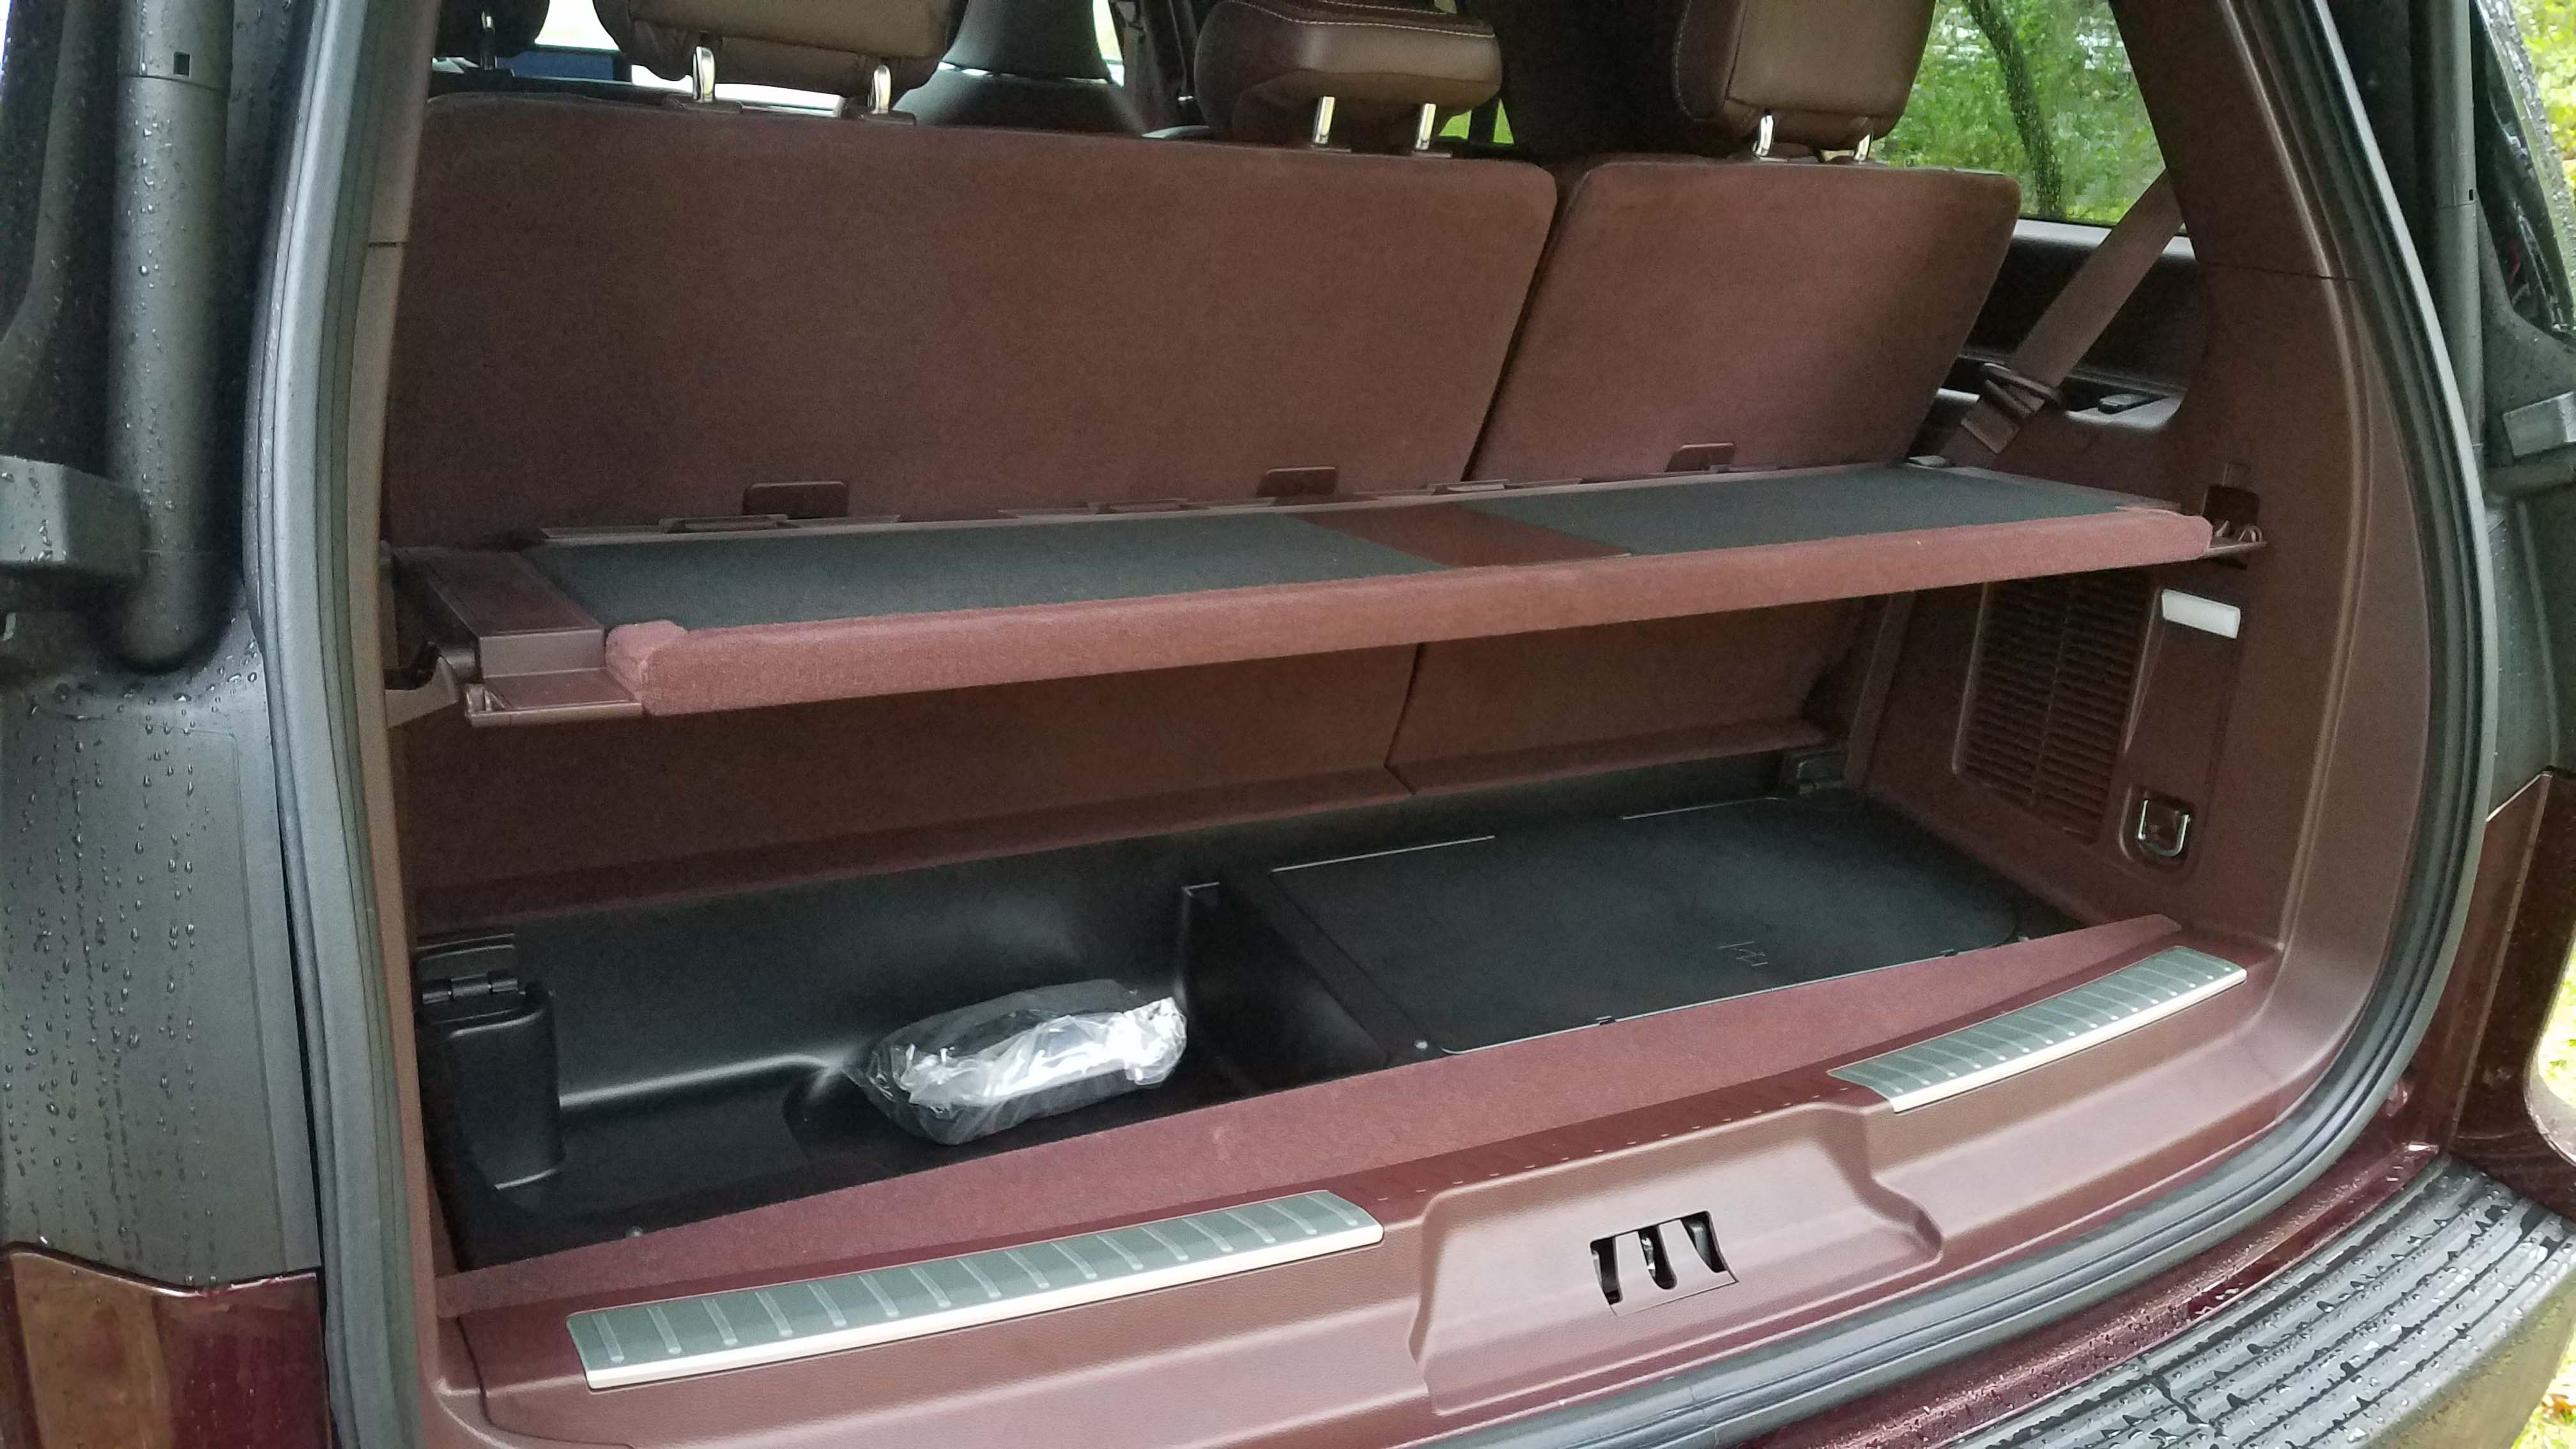 The rear cargo space of the Lincoln Navigator can be